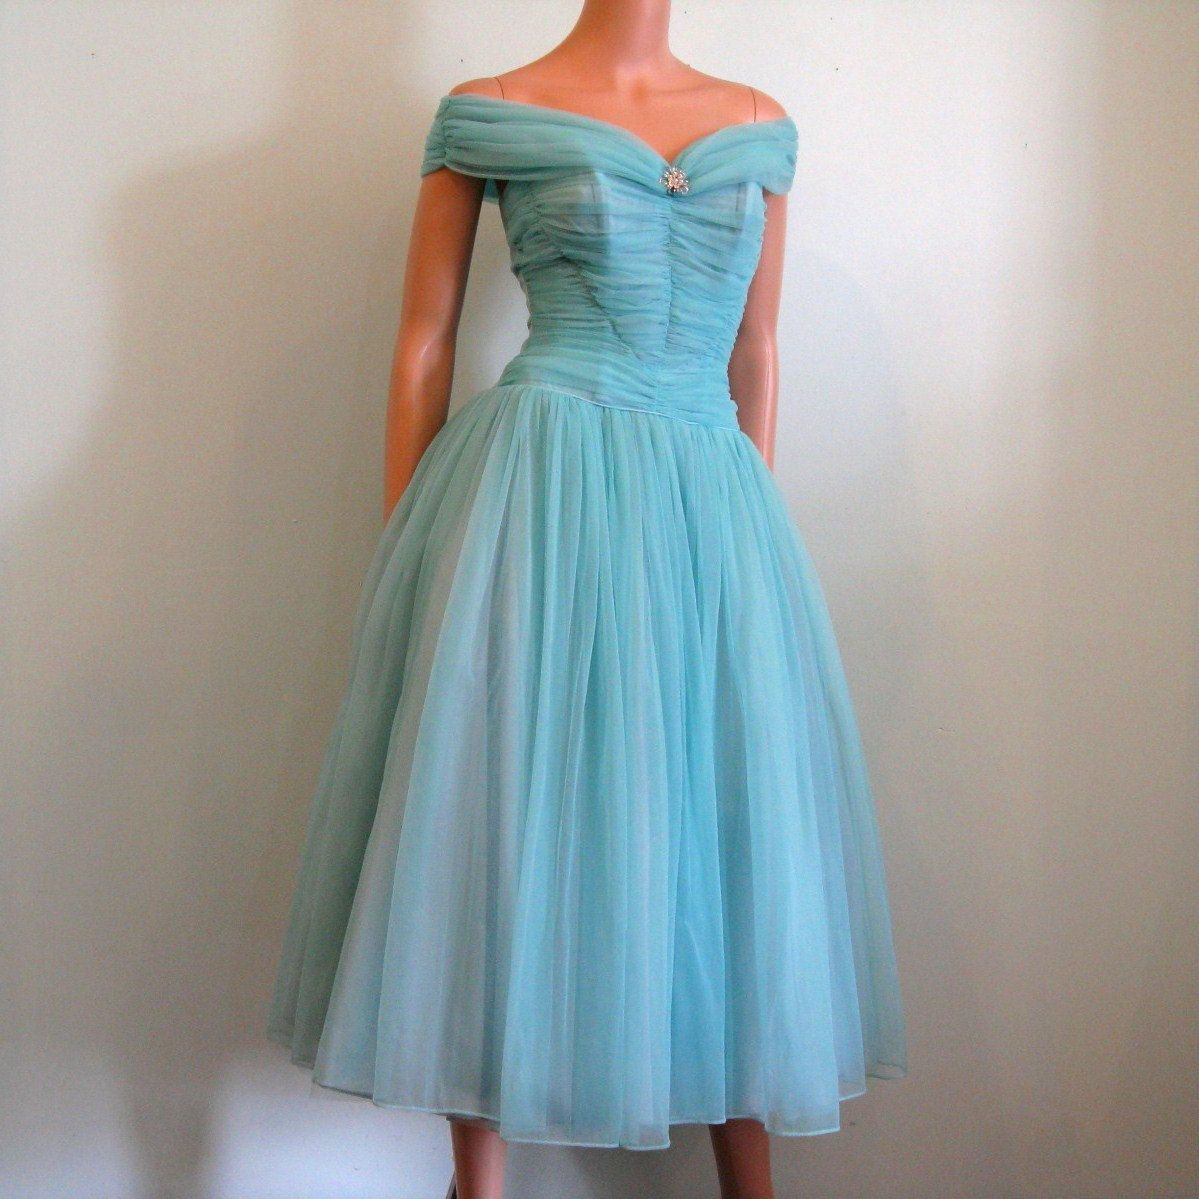 1950s Blue Party / Prom Dress, via Etsy. | Quirky Girl, Vintage ...